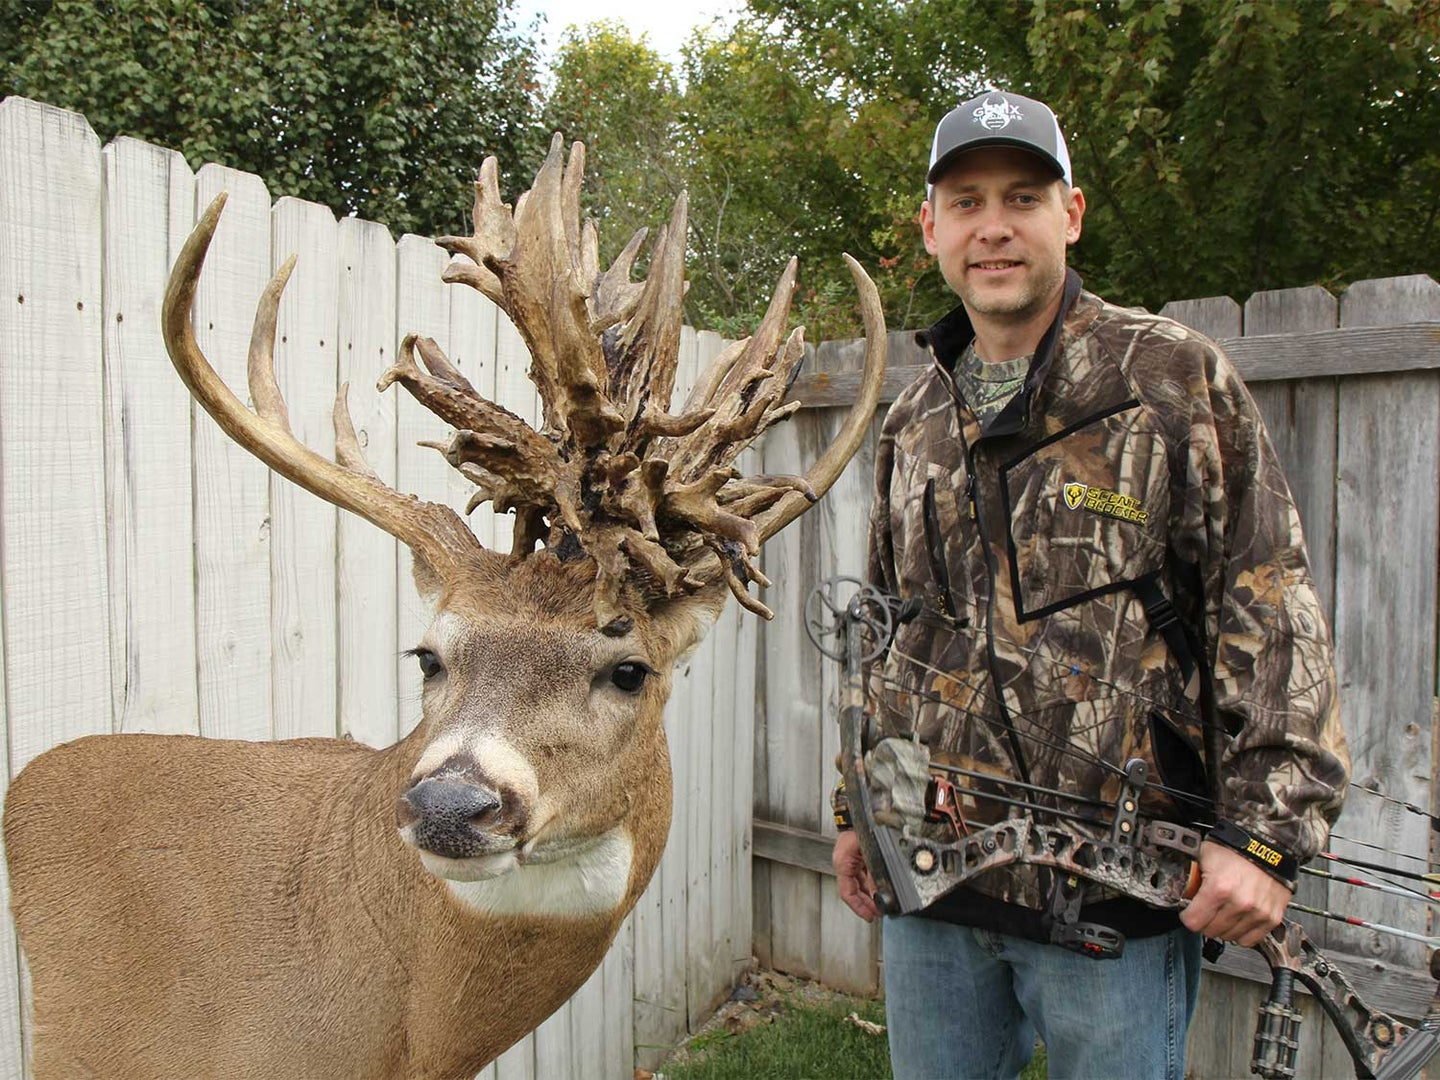 A hunter standing next to a large whitetail buck with a nontypical antler spread.